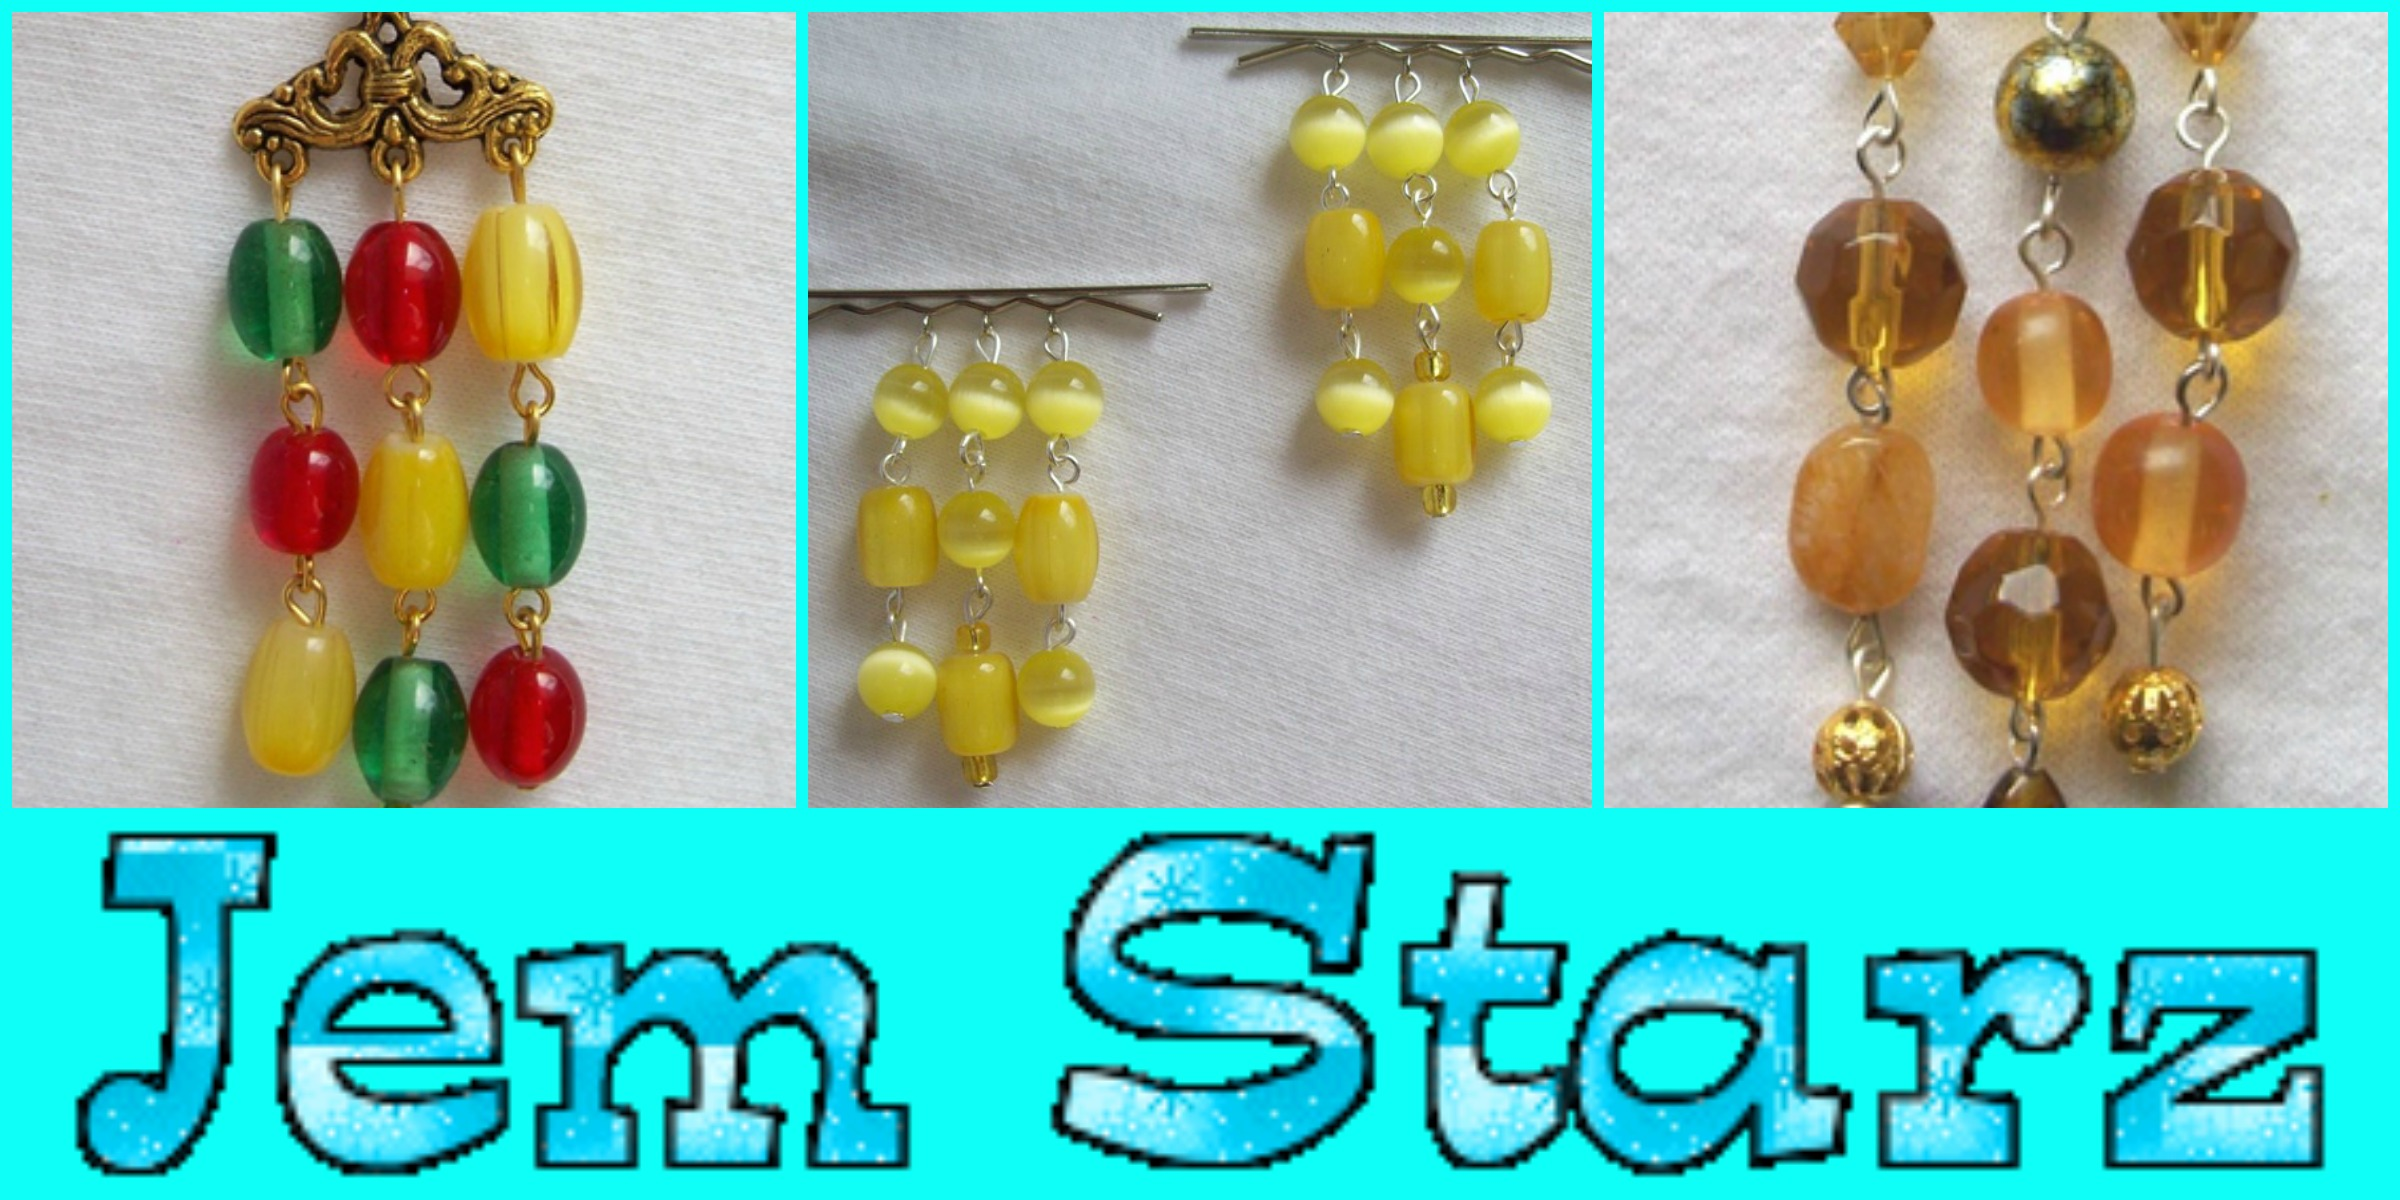 JEM STARZ: Final days for Jem Starz accessories